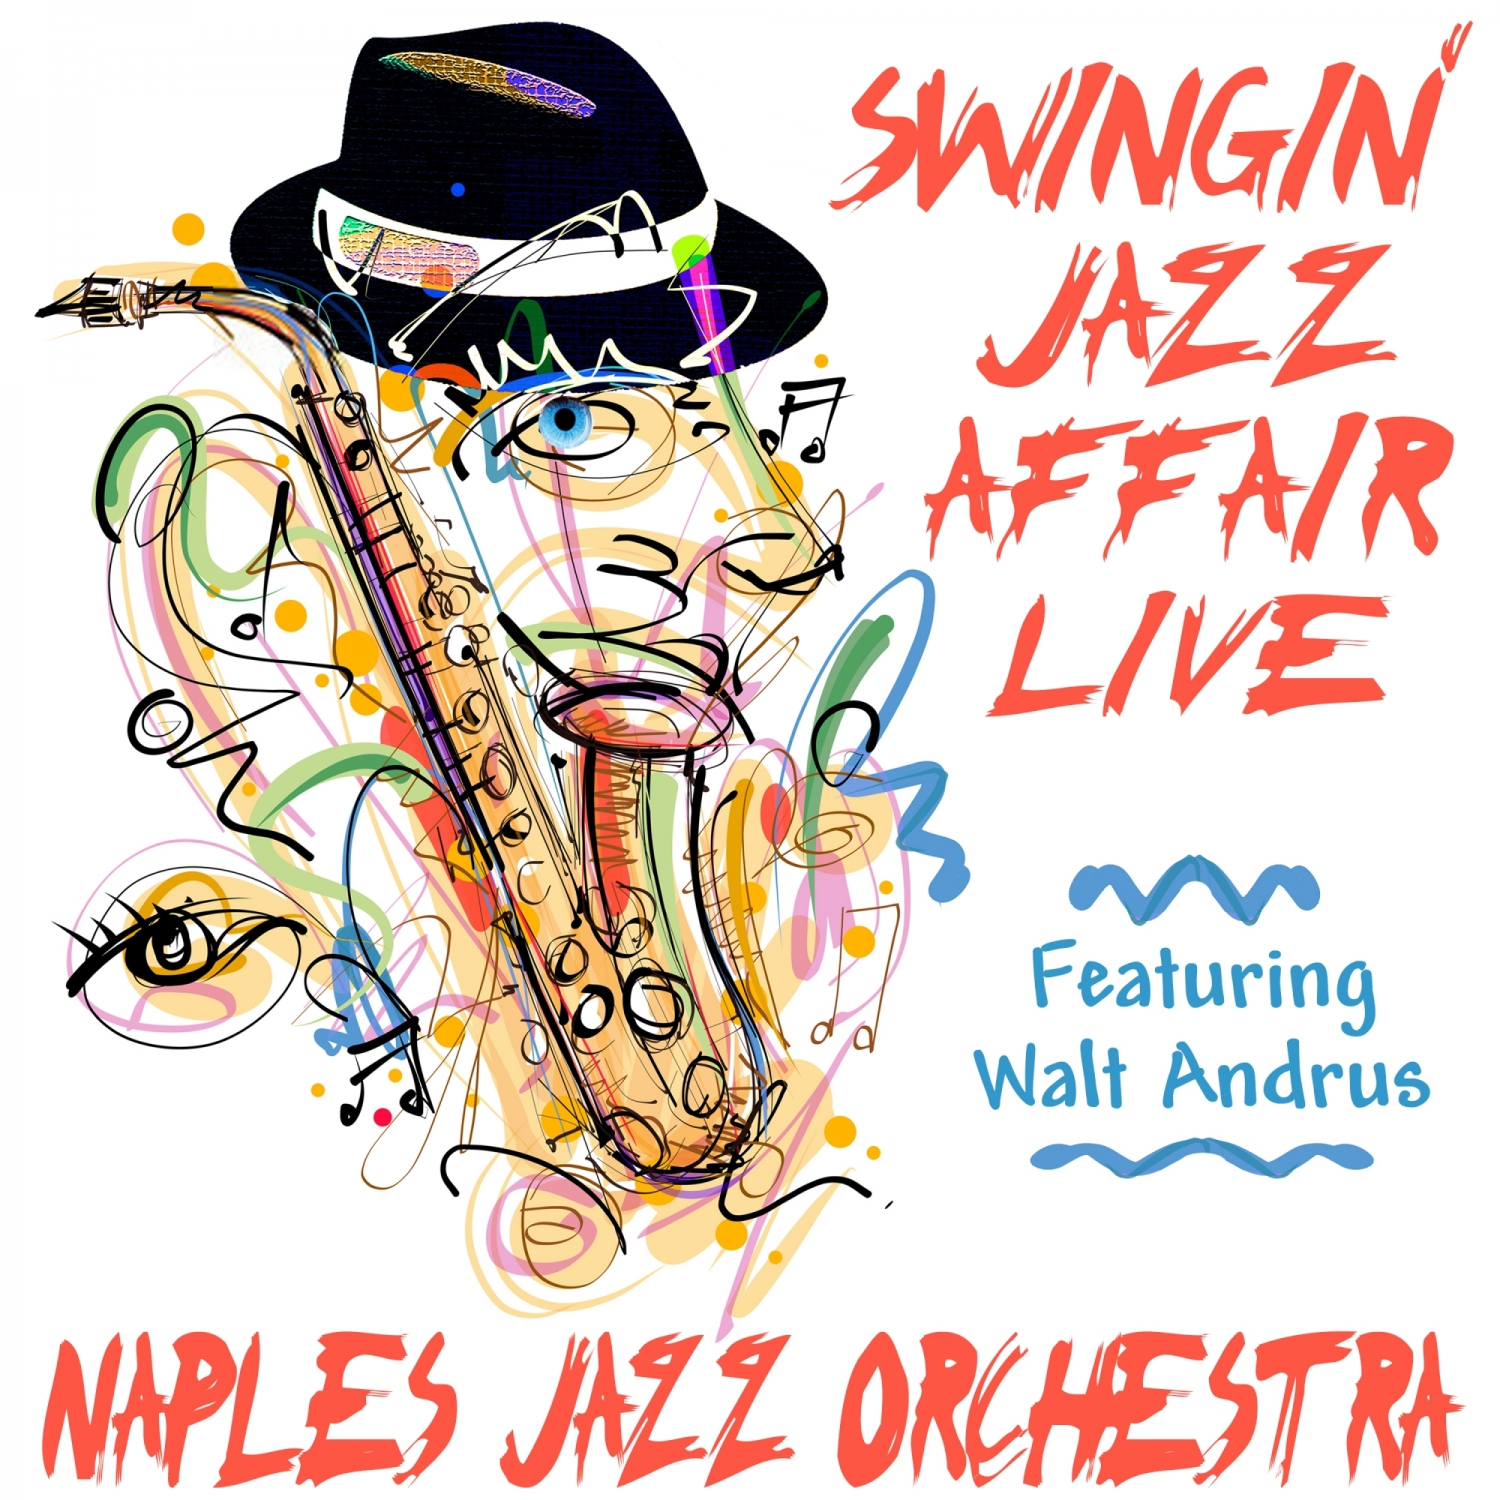 The Naples Jazz Orchestra  - The Best is Yet to Come  (feat. Walt Andrus)